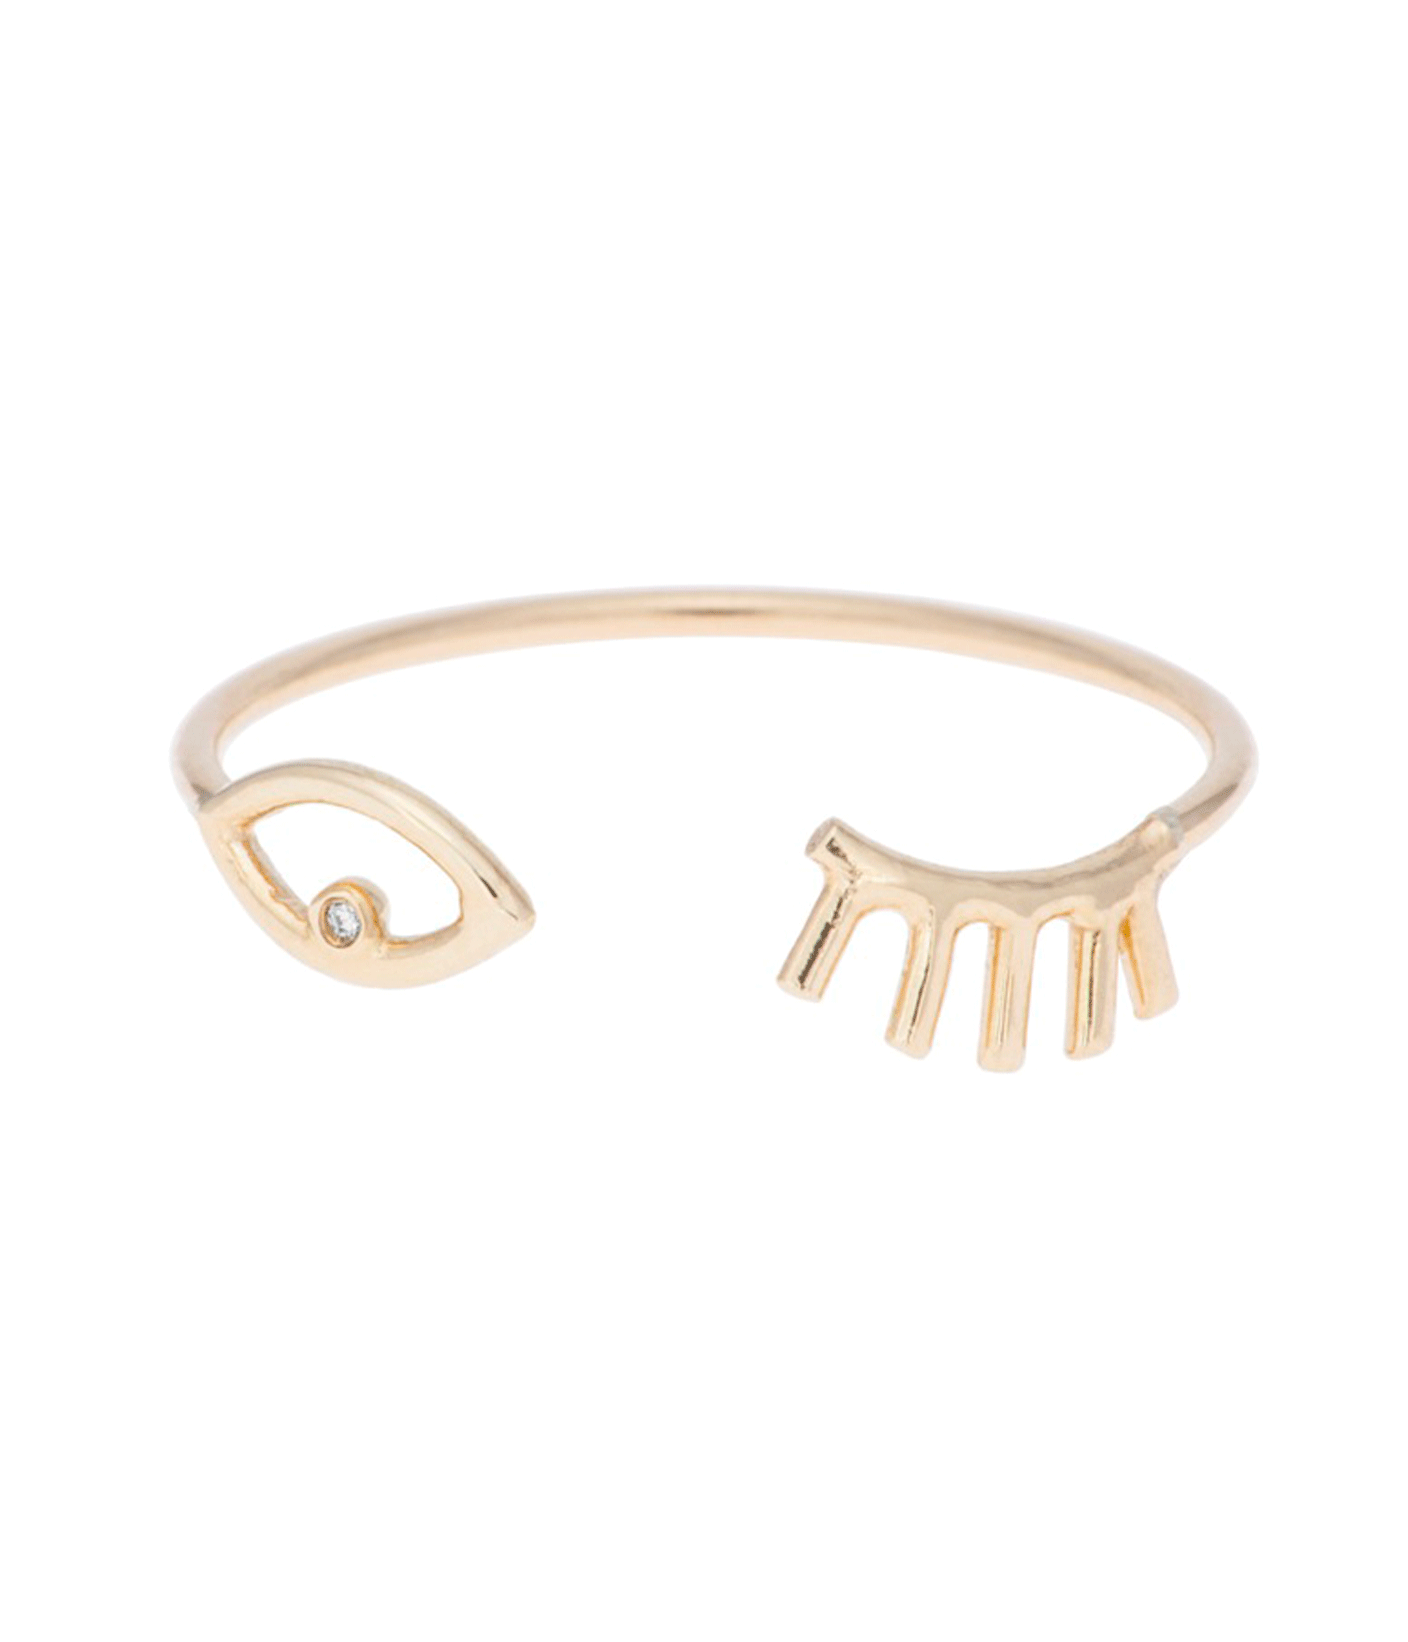 wink ring | @themissprints